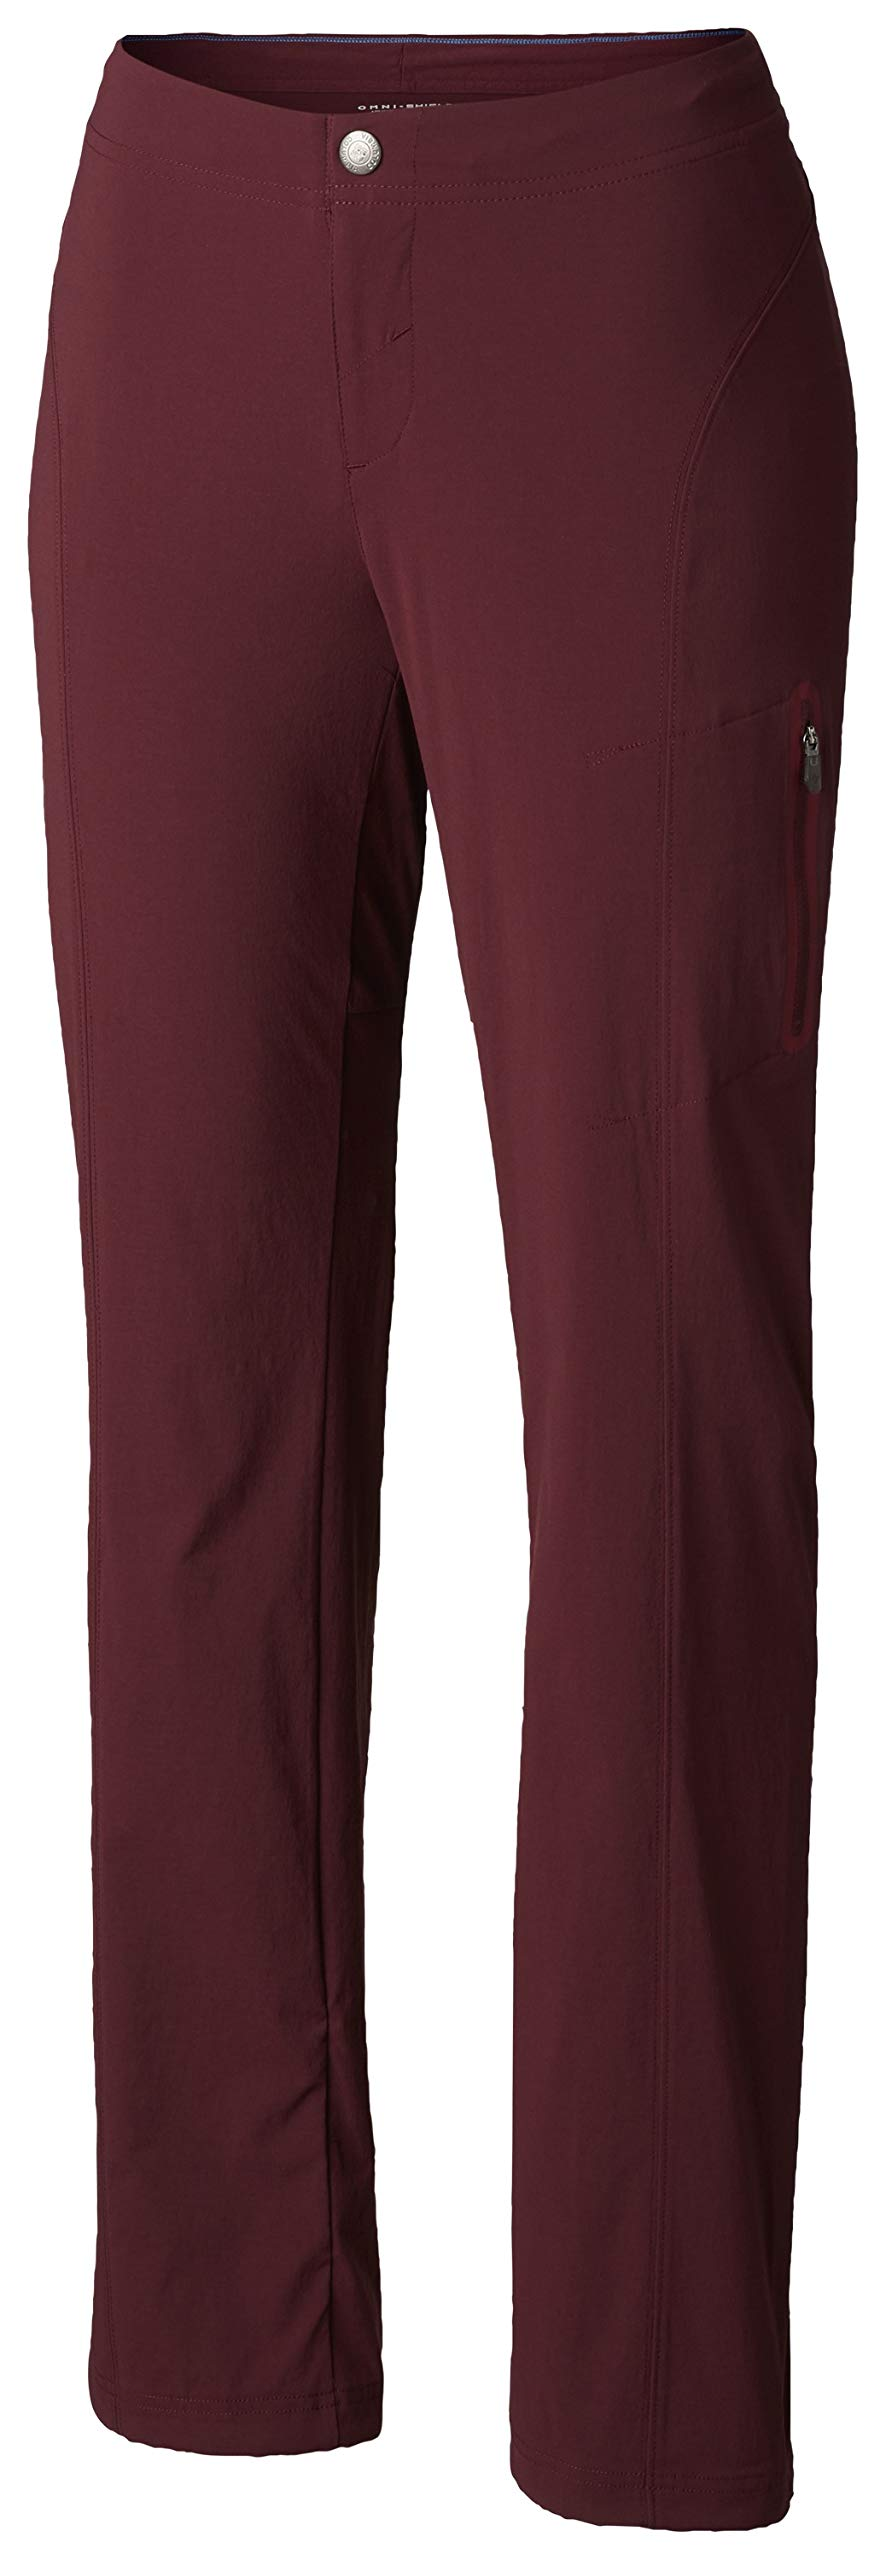 Columbia Women's Plus Size Just Right Straight Leg Pant, Deep Madeira 20W Regular